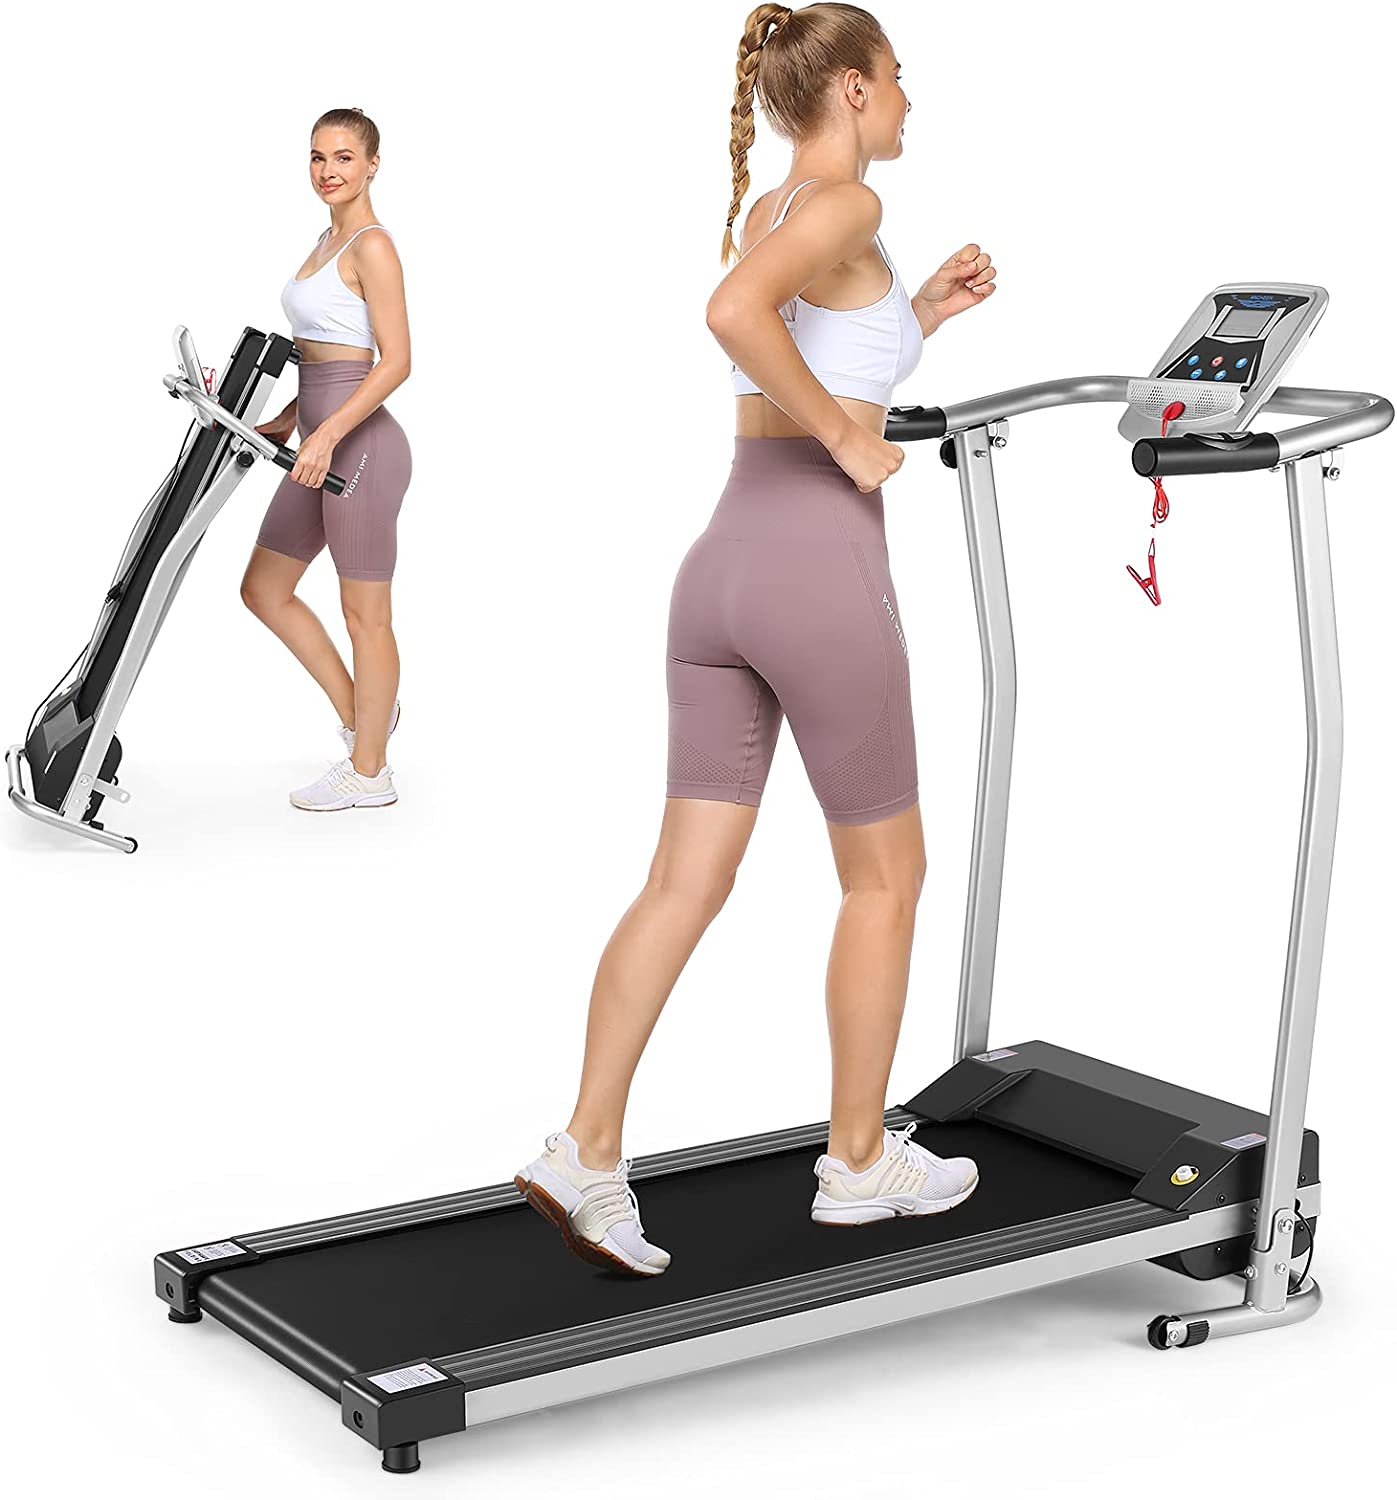 Folding Treadmill Limited time for free shipping Electric Running Machine Stop Large-scale sale Auto Func Safety